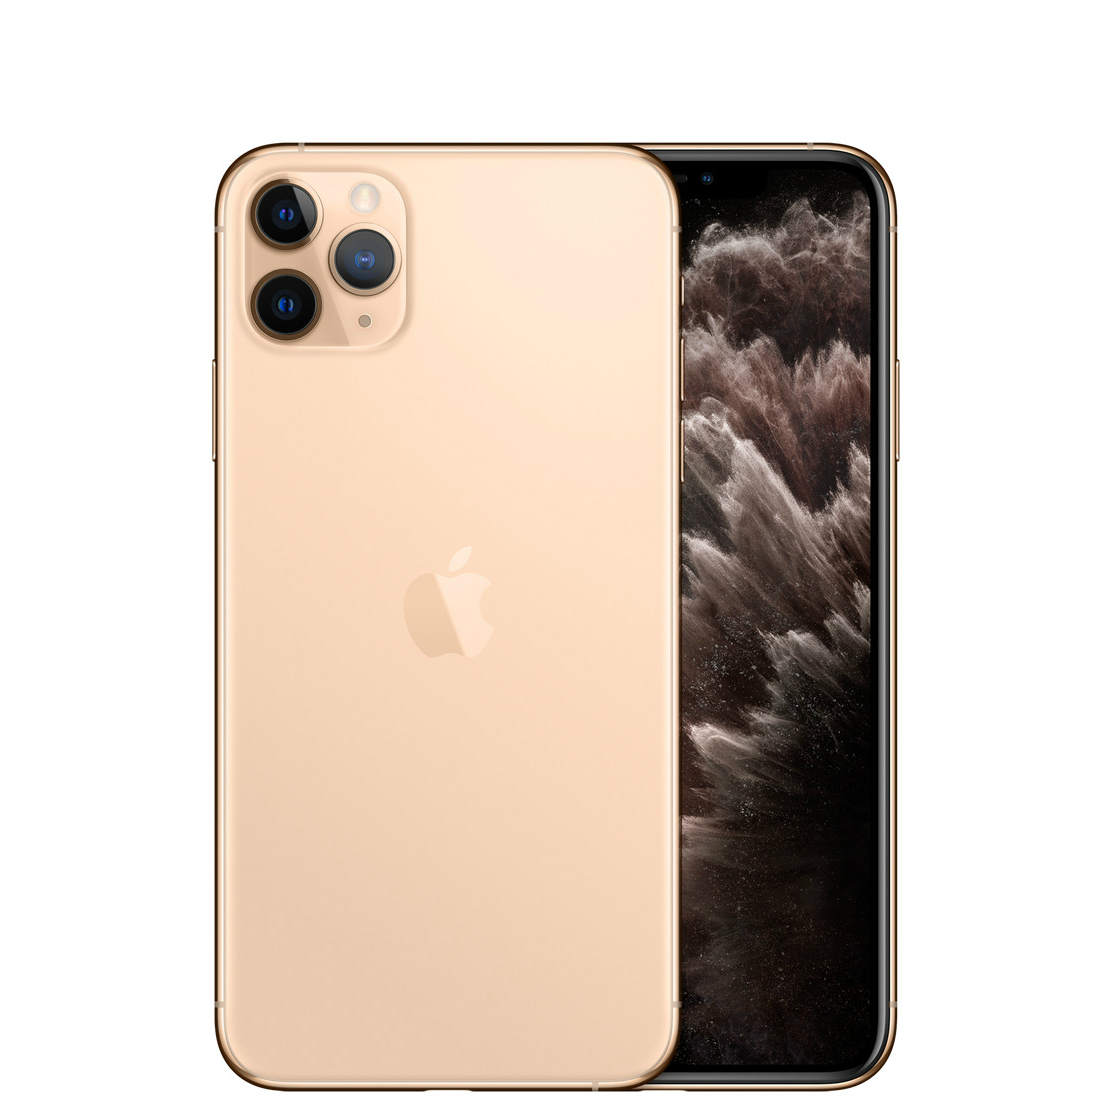 Image of Apple iPhone 11 Pro 256GB A2217 Dual Sim with Tempered Glass Screen Protector - Gold